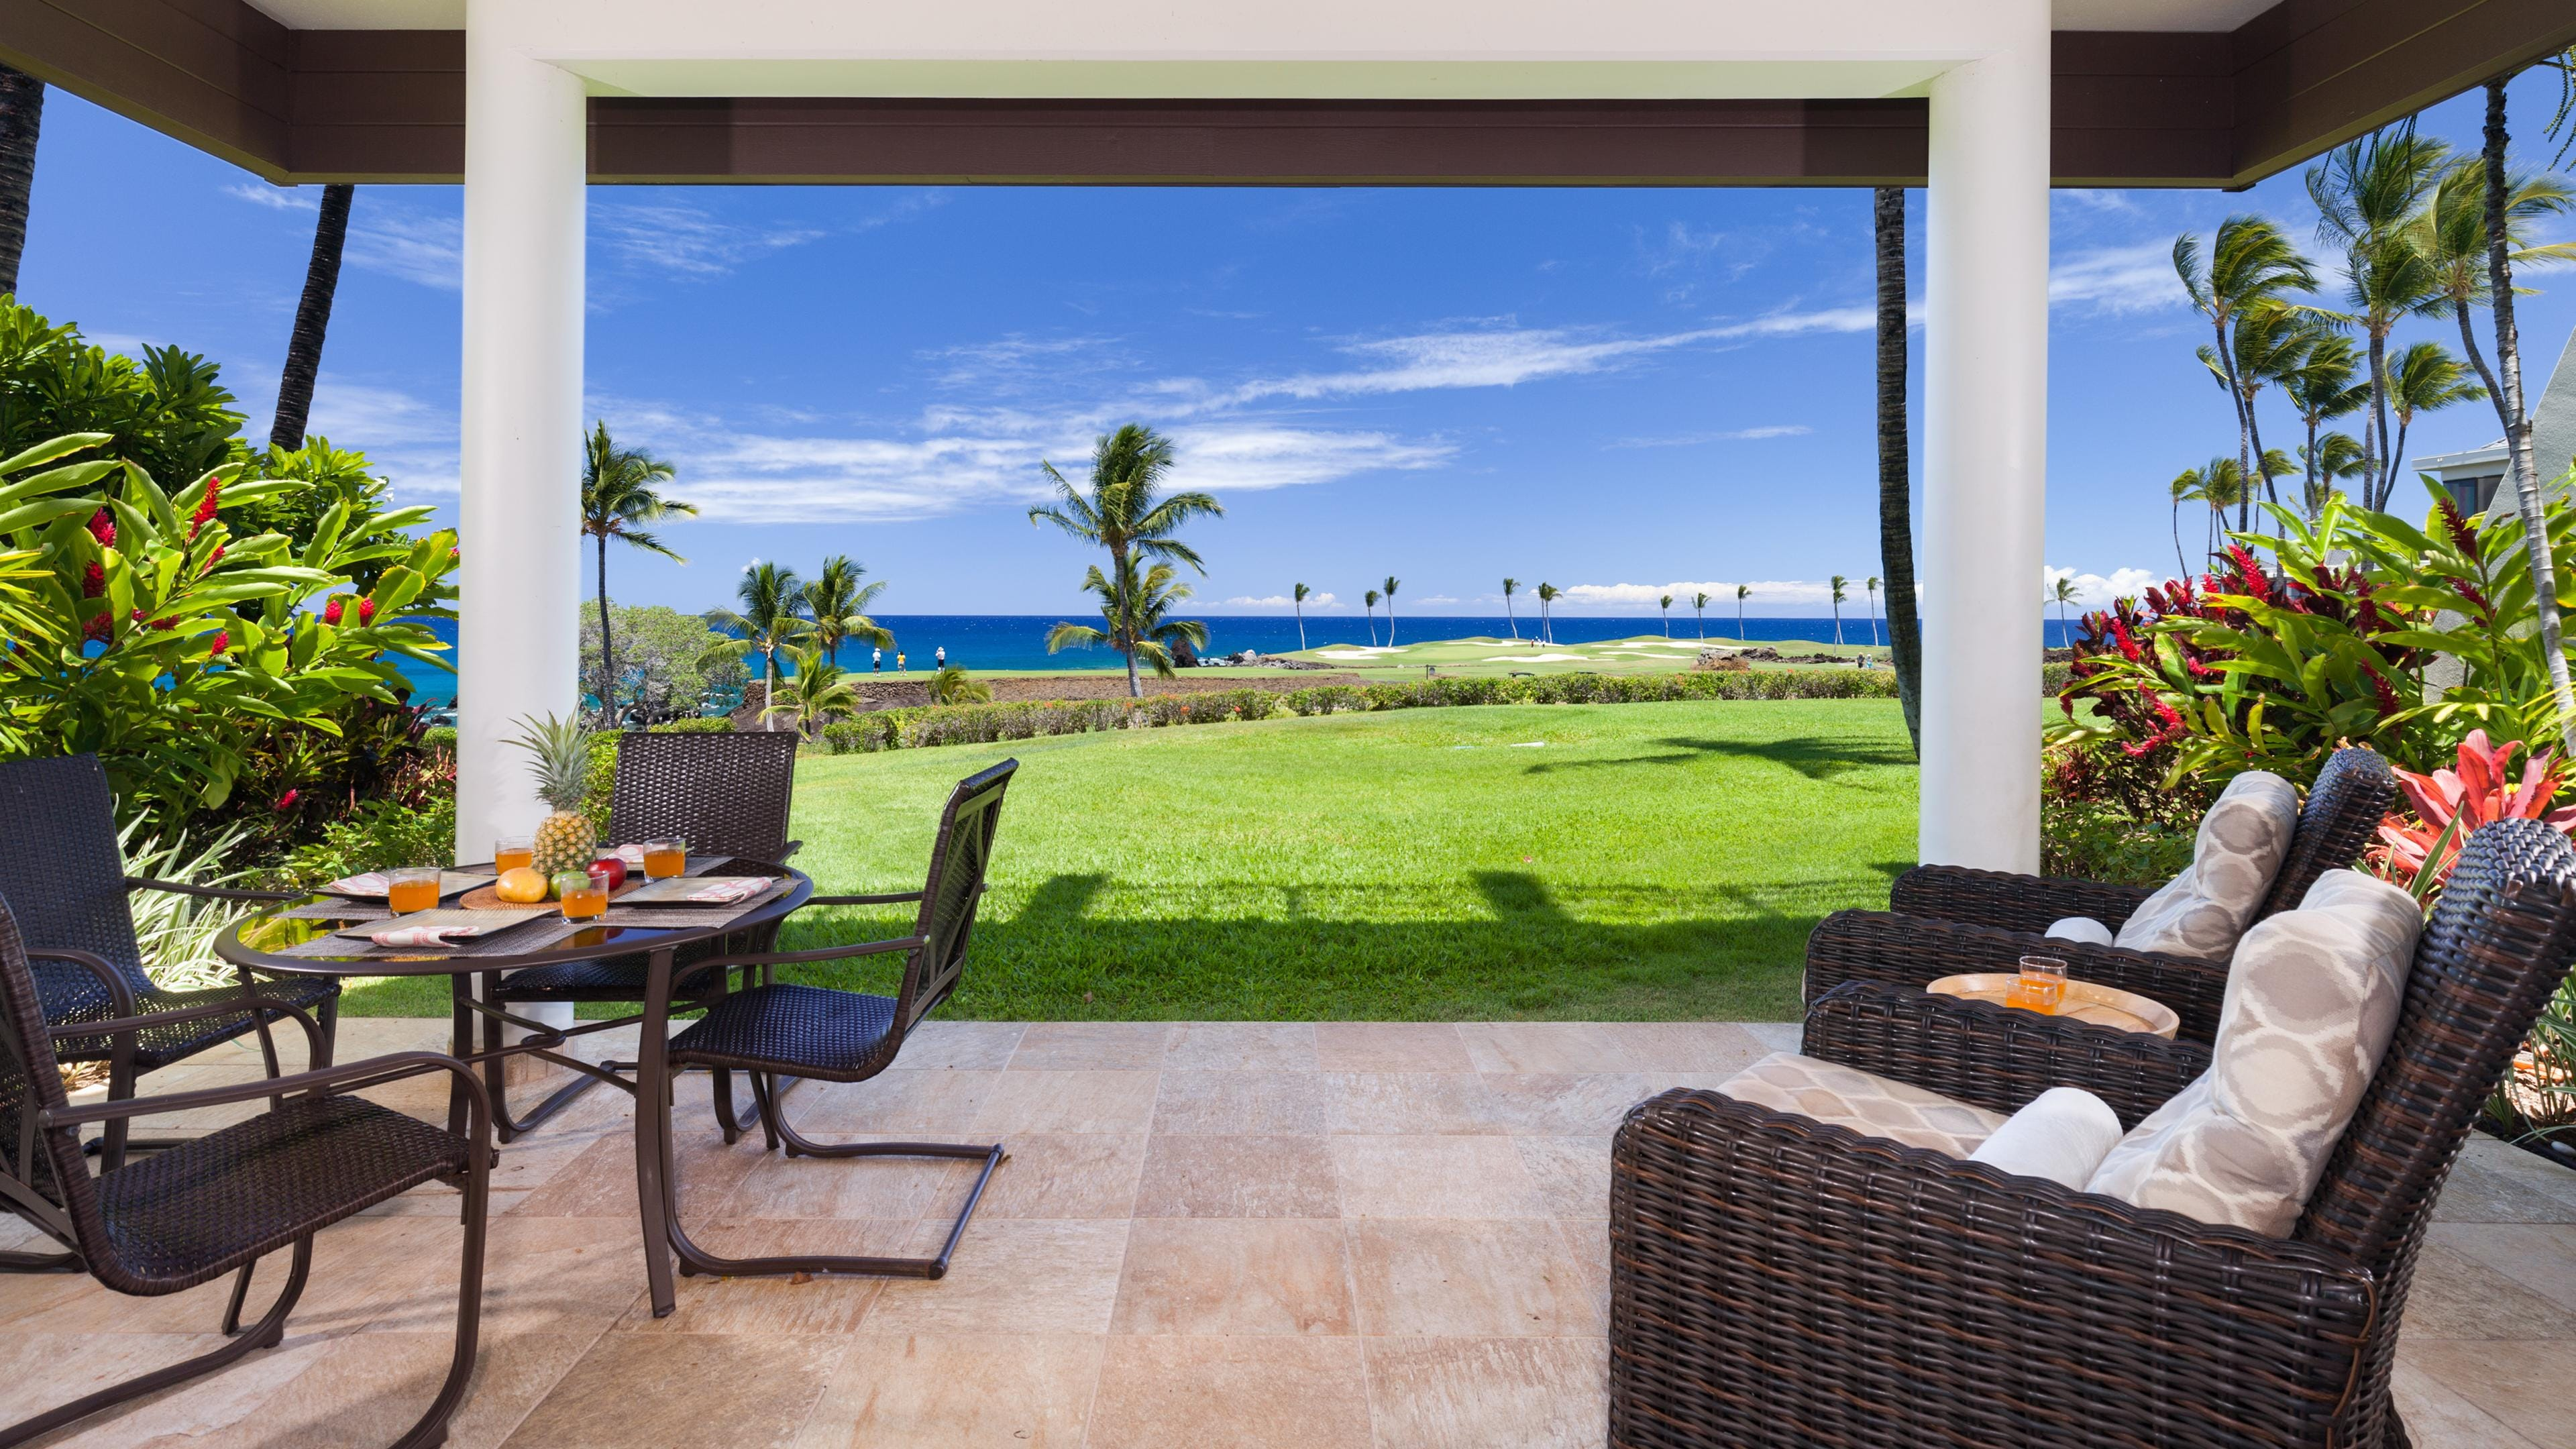 Welcome to Coastal Dreams Villa - This is the view from the lanai